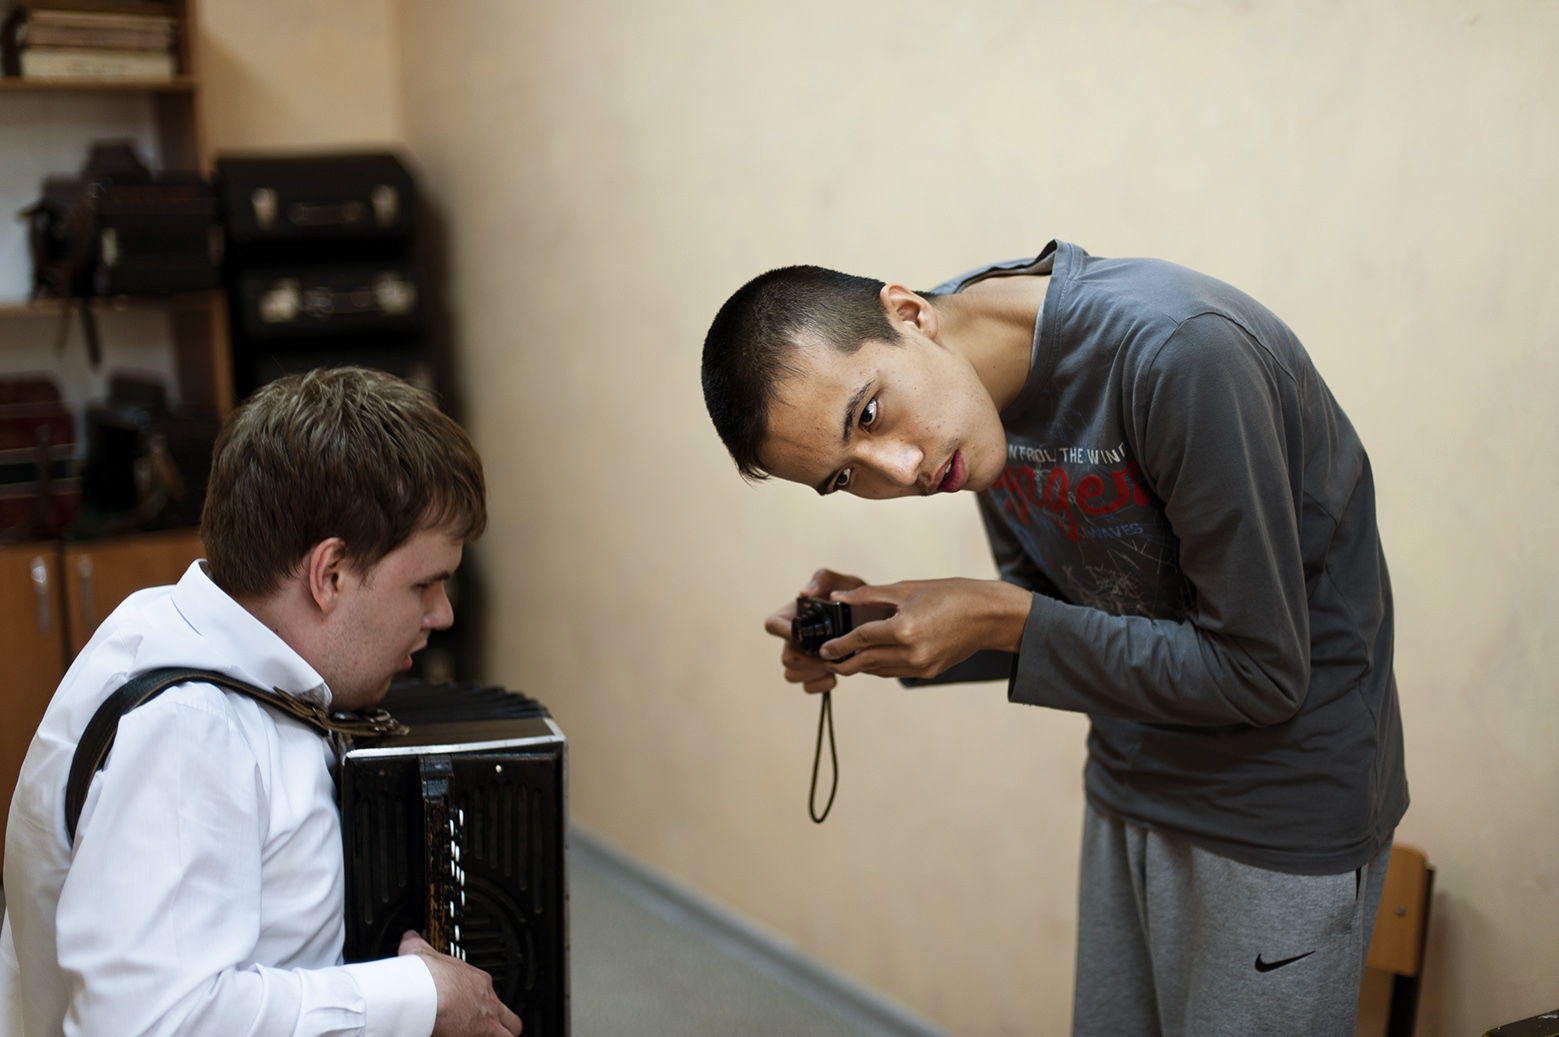 Faruh fotografiert, blinder Junge, Workshop in Almaty (Kasachstan), 2017.